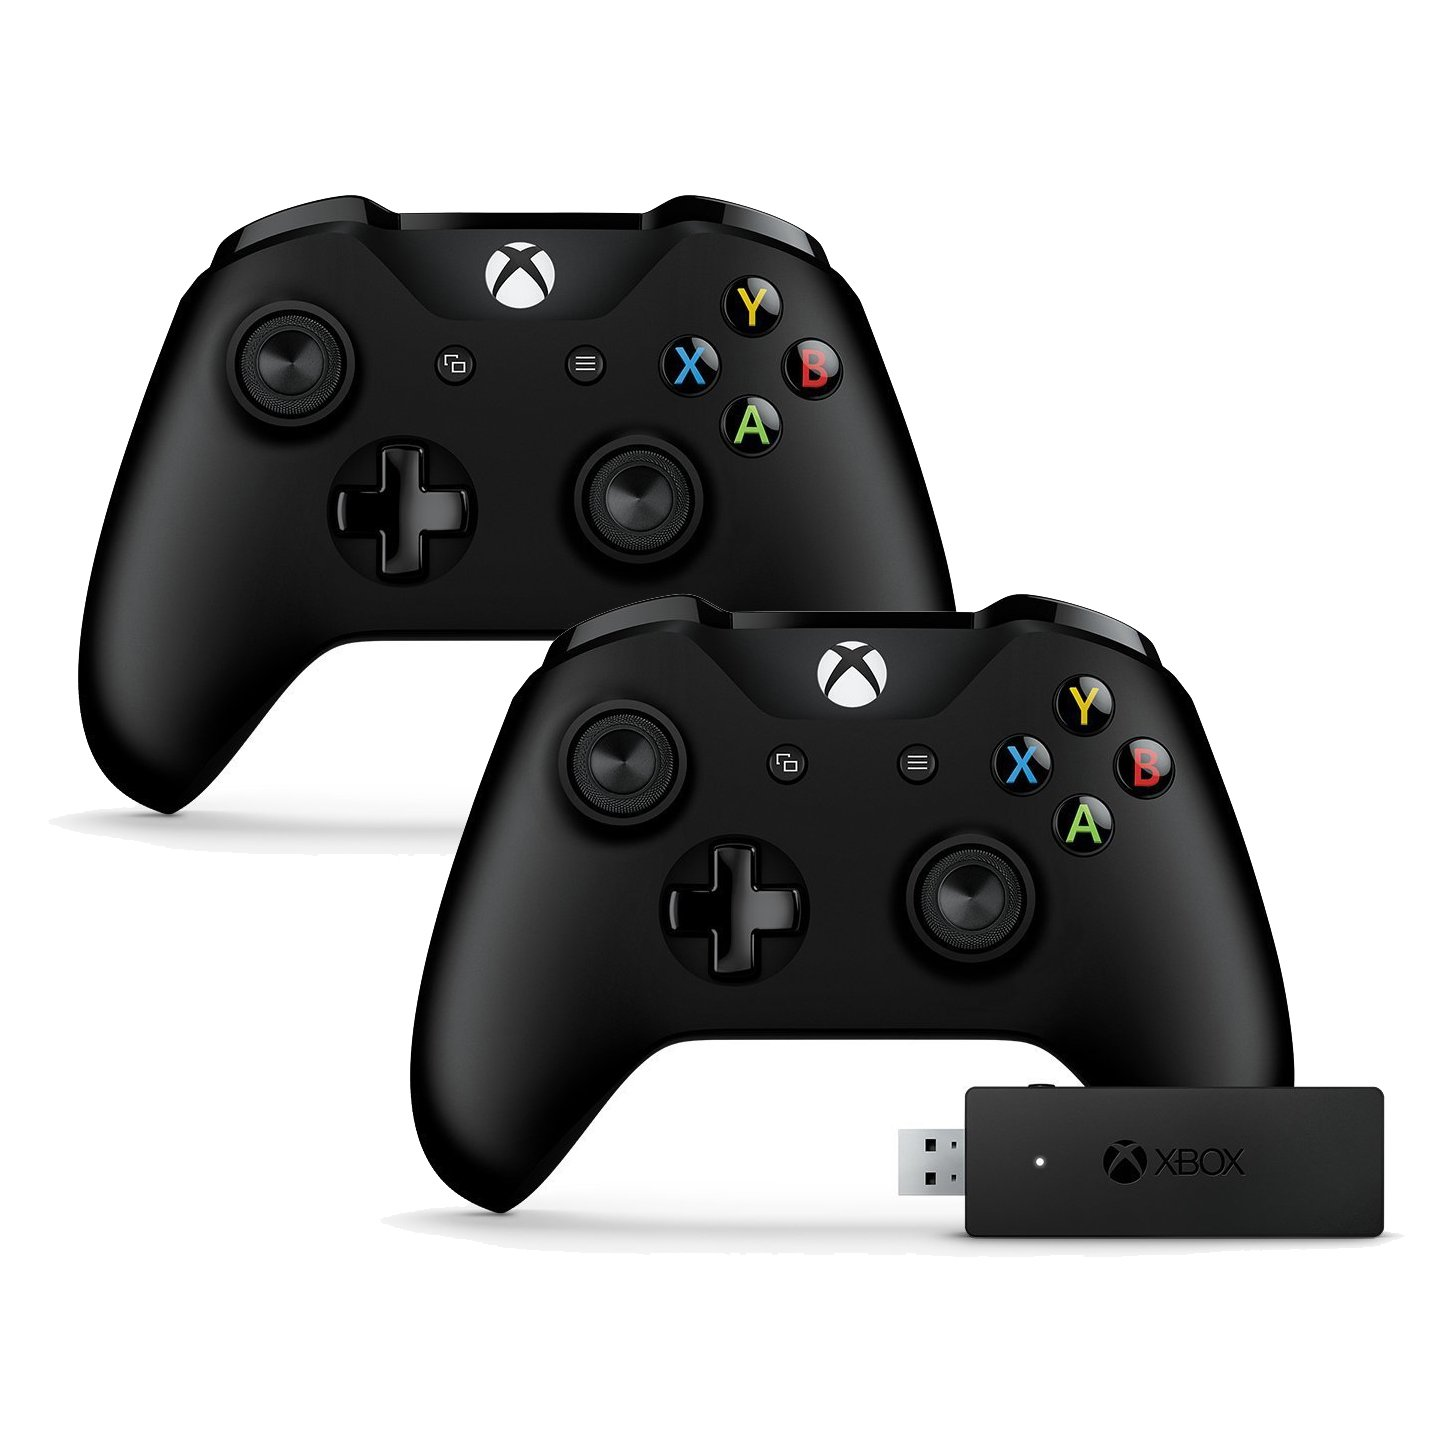 Amazon 2 Pack Microsoft Xbox e Controller and Wireless Adapter for Windows CWT Electronics